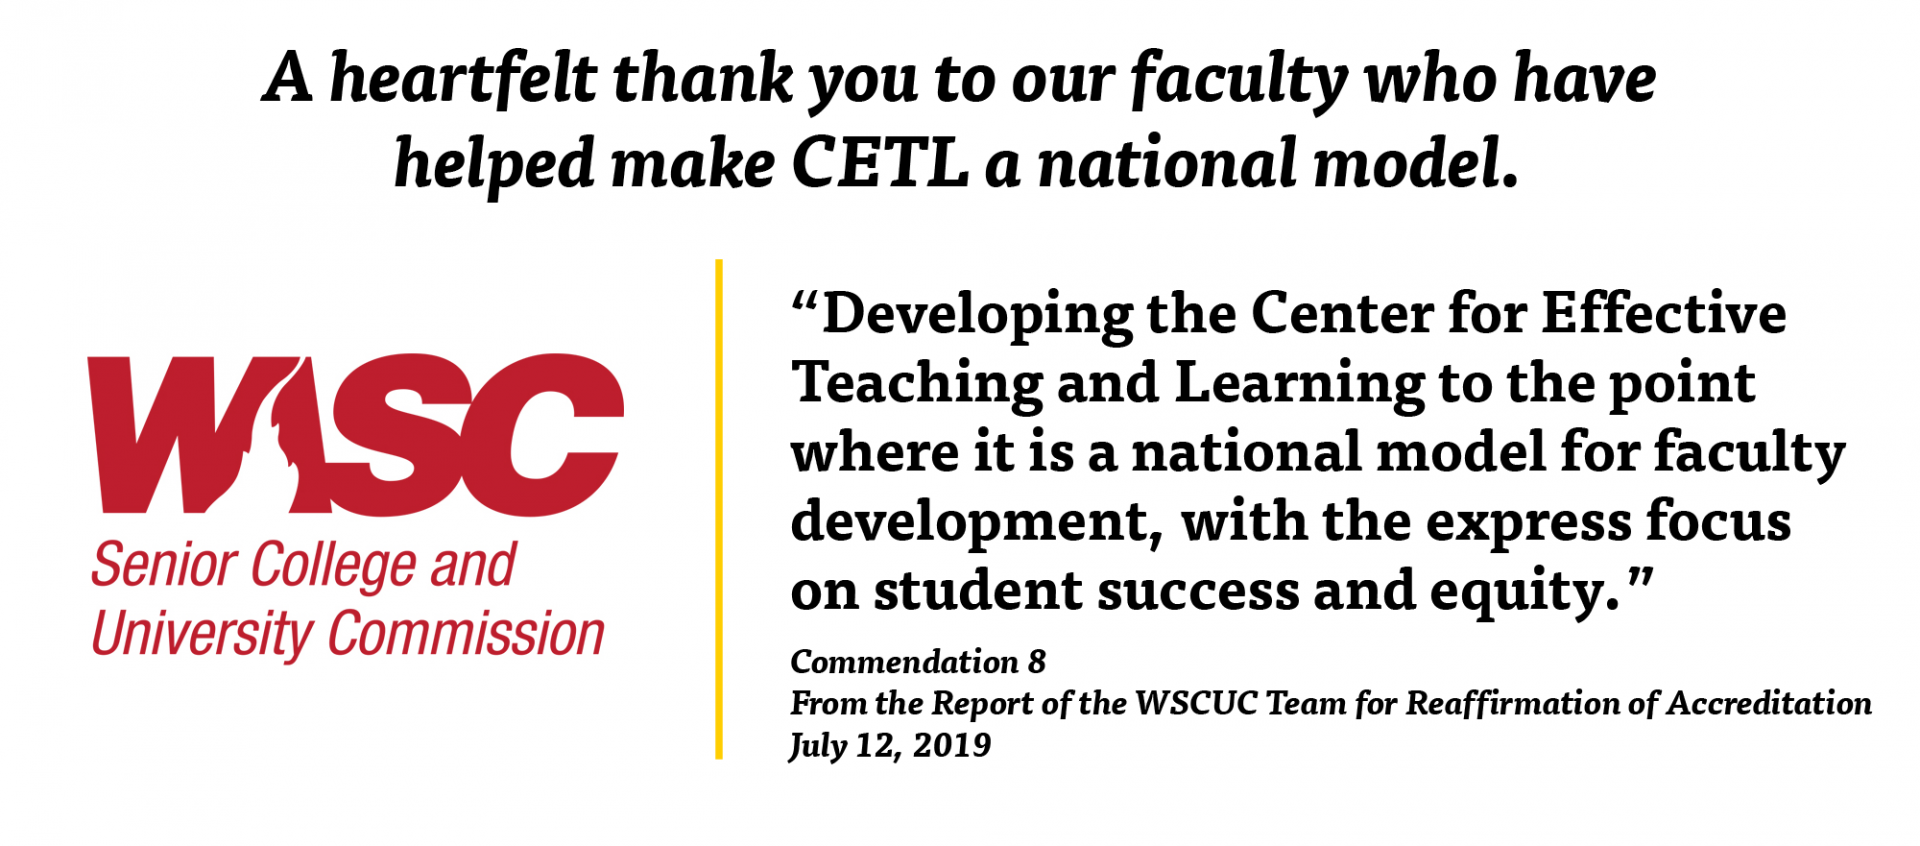 WASC Senior College and University Commission Commendation 8 recognizing CETL as a national model.